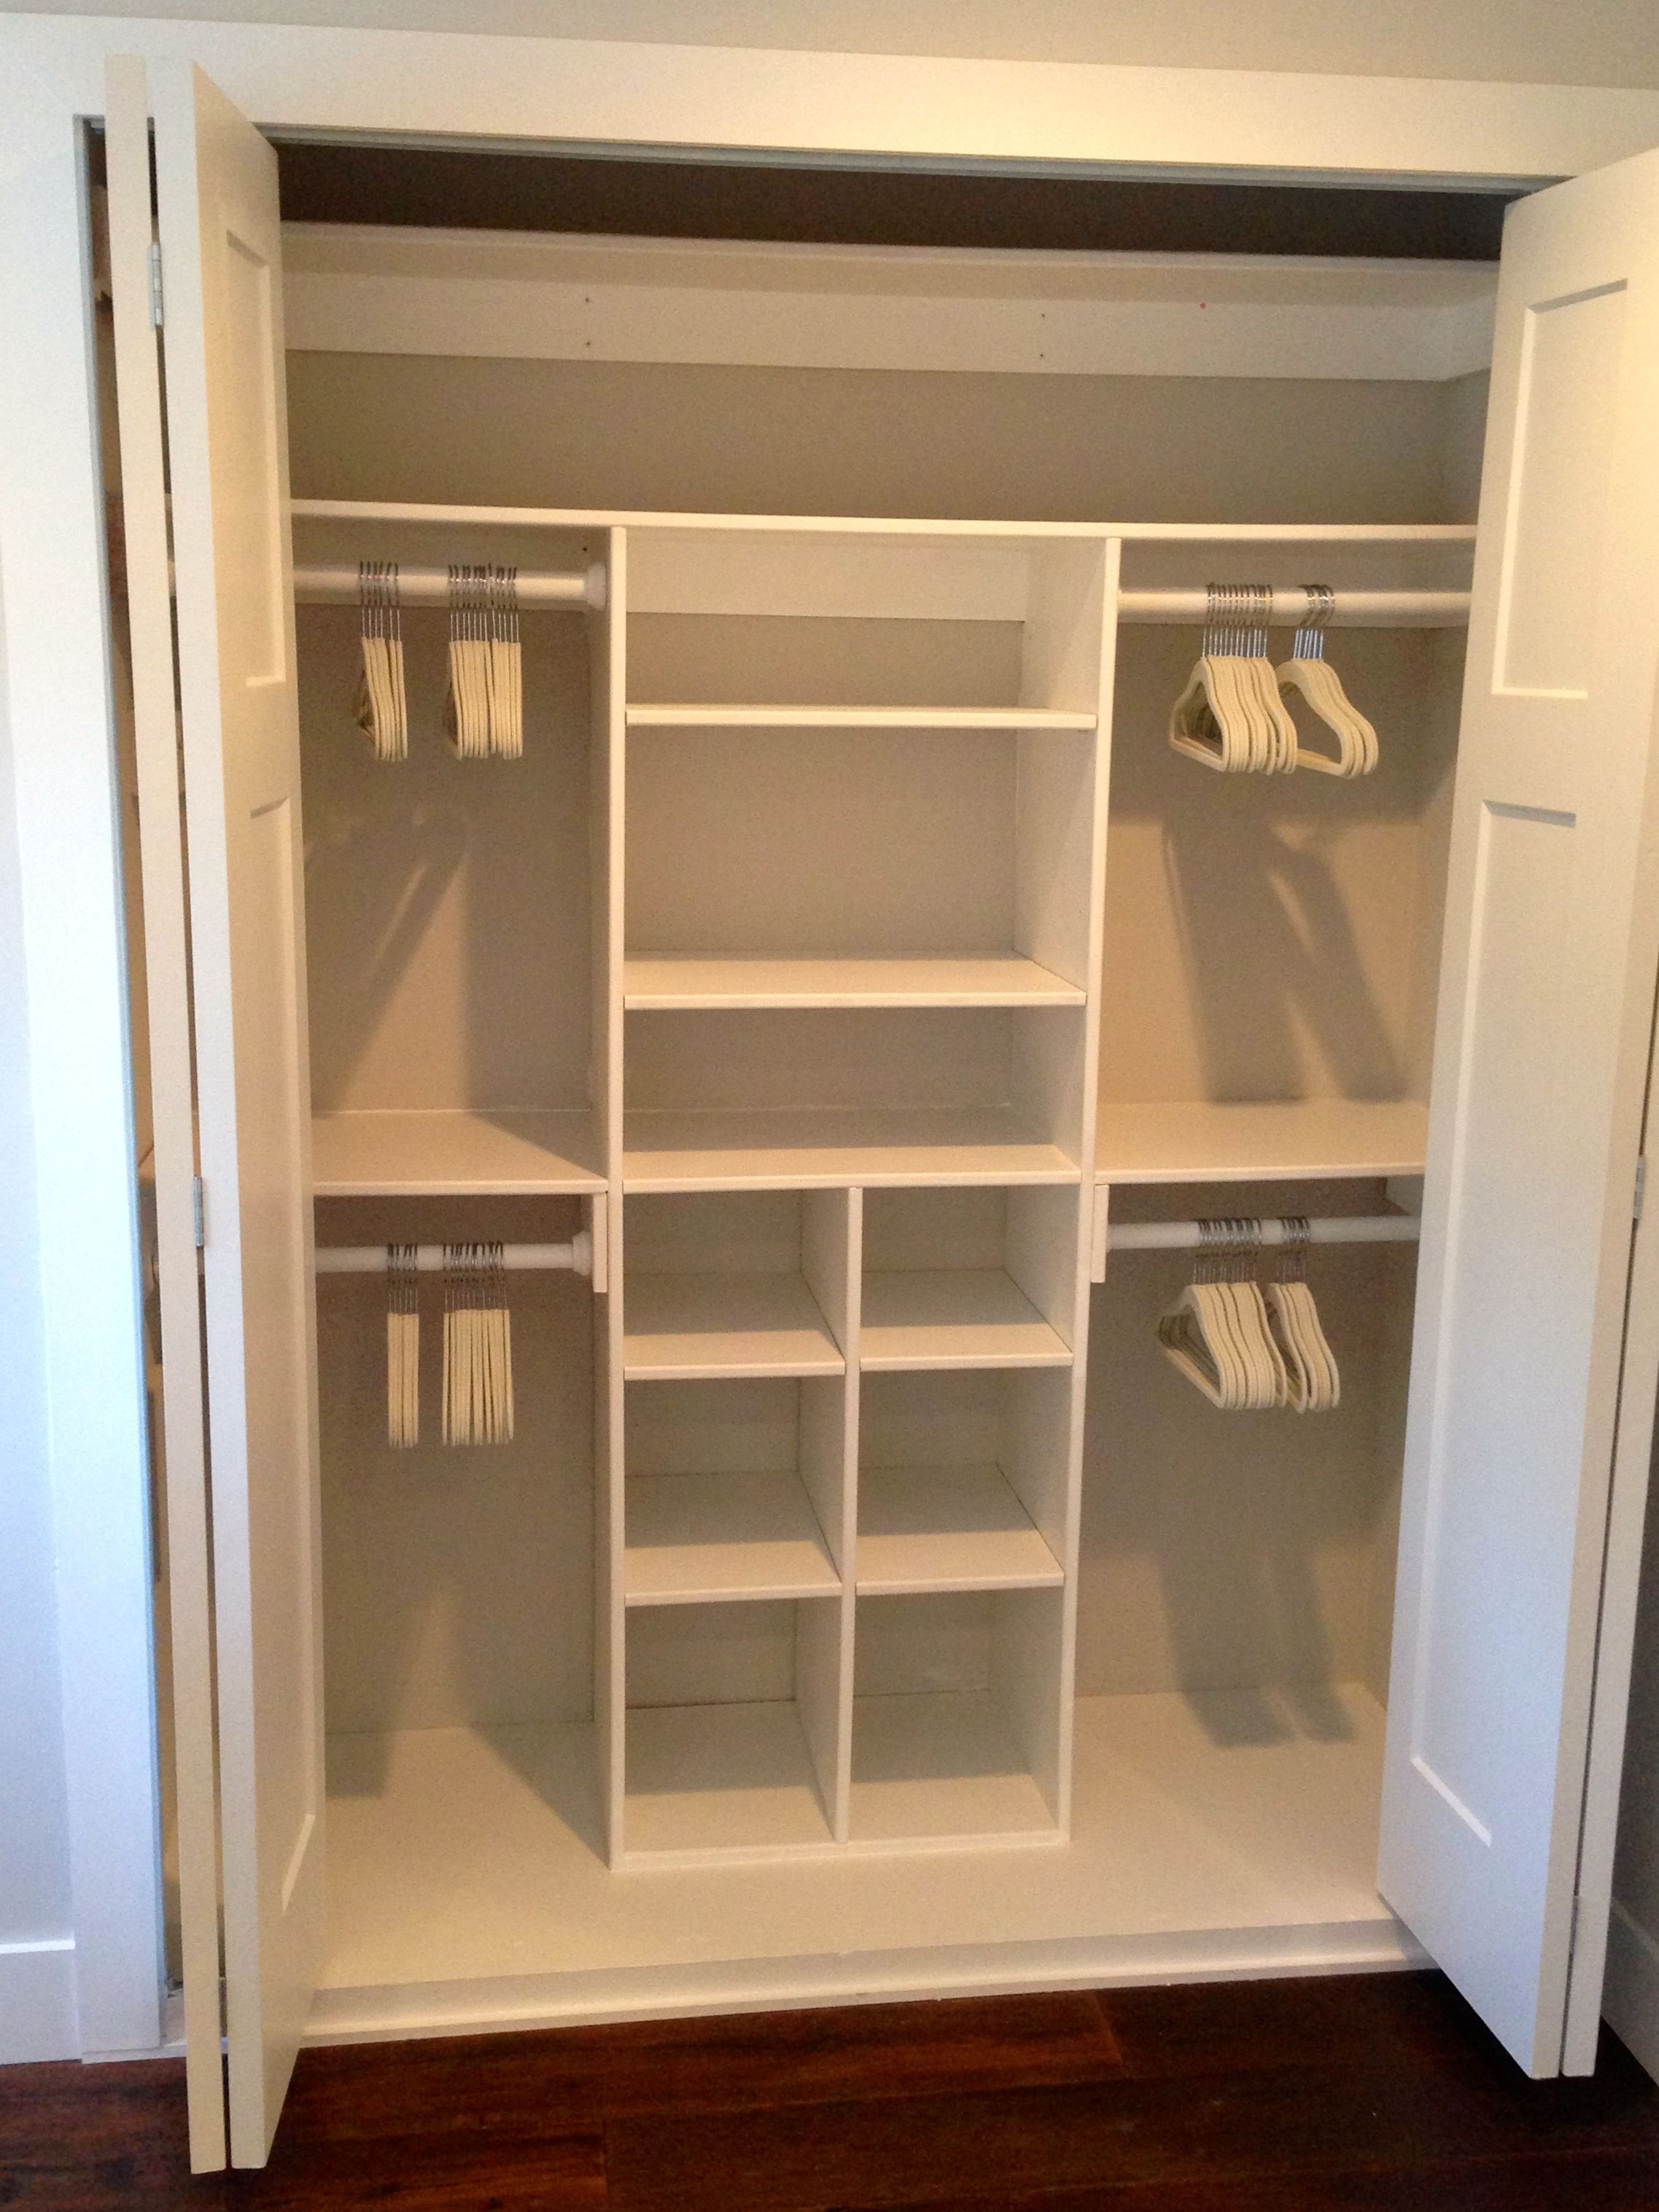 Just My Size Closet Do It Yourself Home Projects from